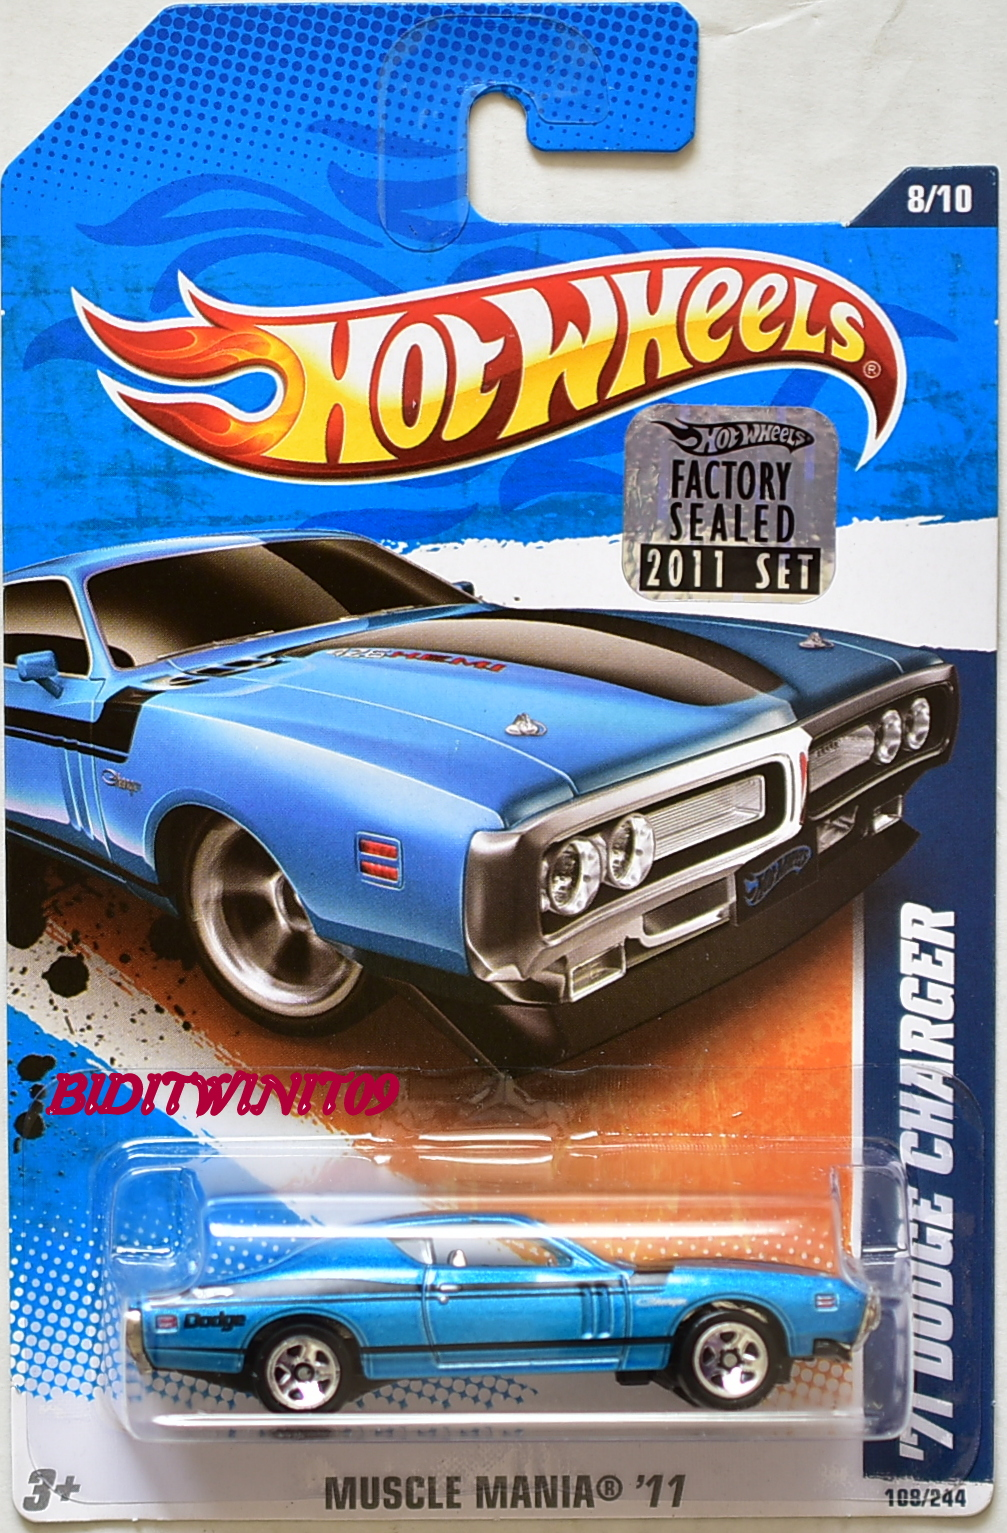 HOT WHEELS 2011 MUSCLE MANIA '71 DODGE CHARGER BLUE FACTORY SEALED